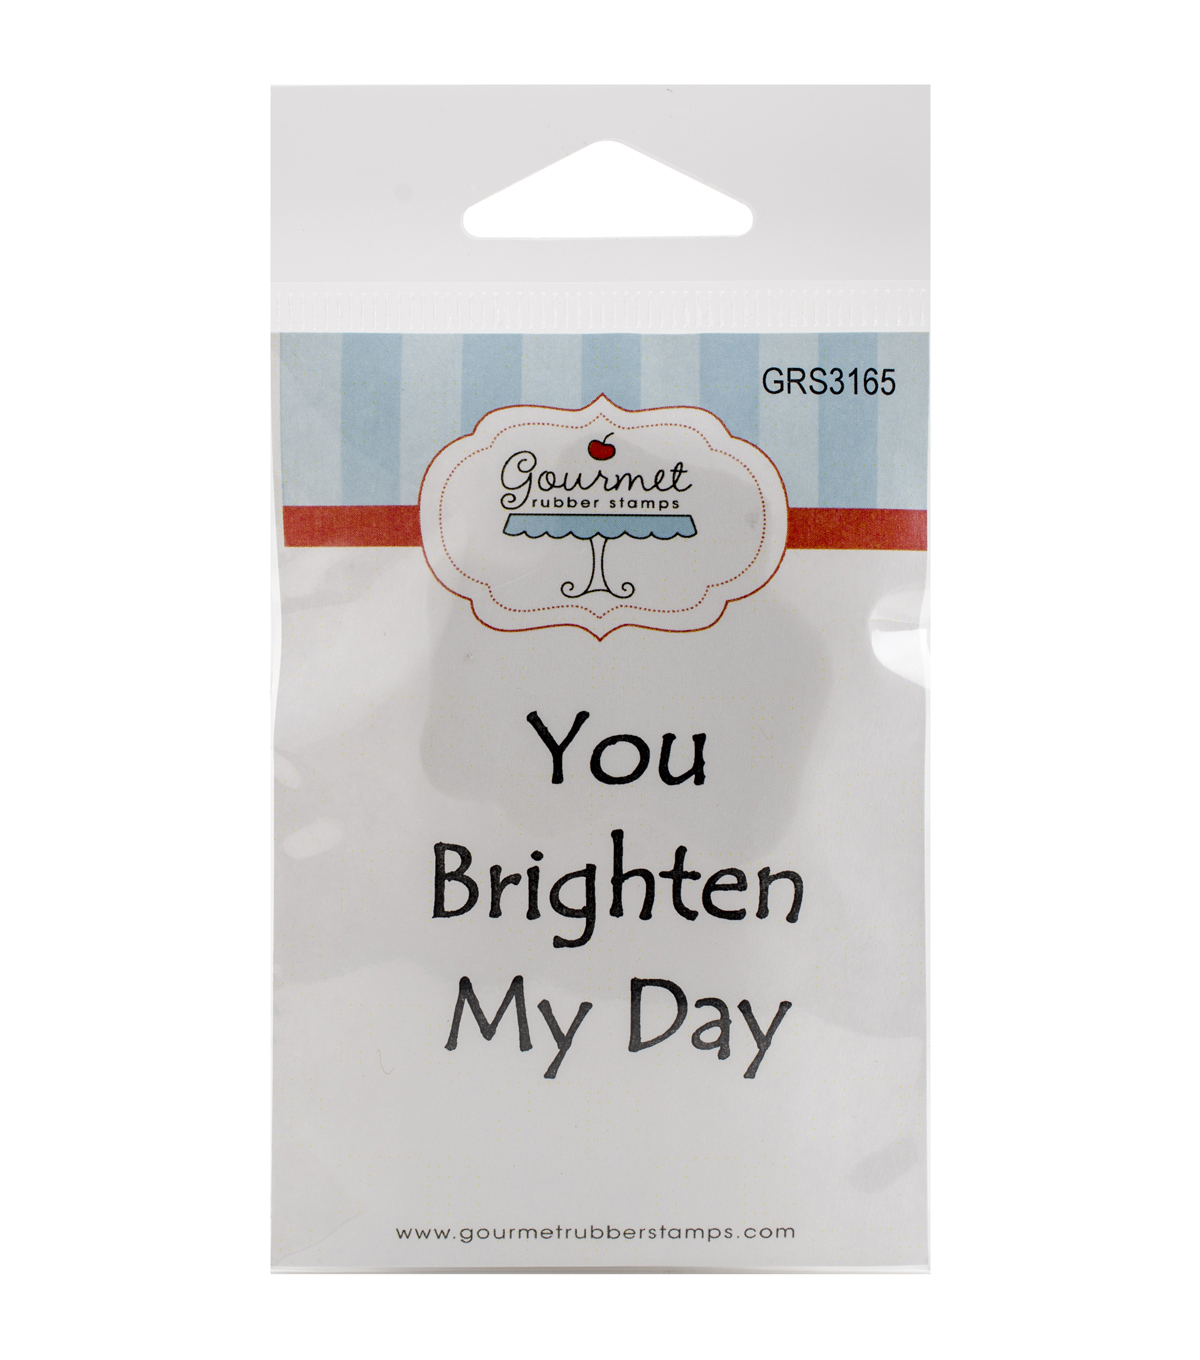 Gourmet Rubber Stamps You Brighten My Day Cling Stamps